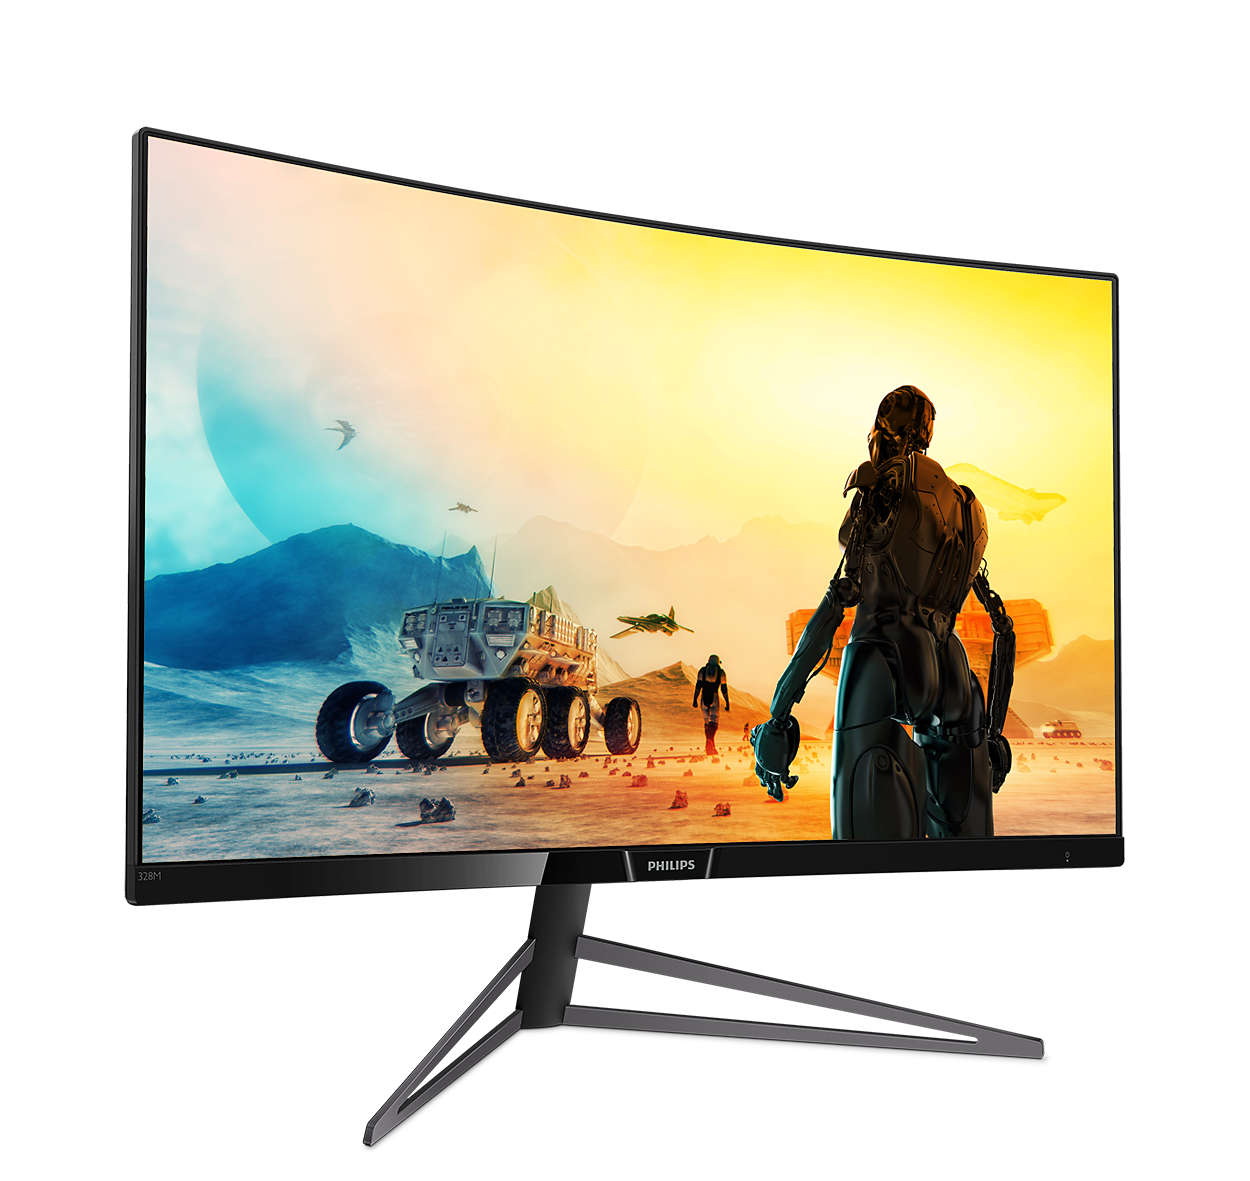 "(VA 32"" Curved) Philips 328M6FJMB - 144Hz-2K"